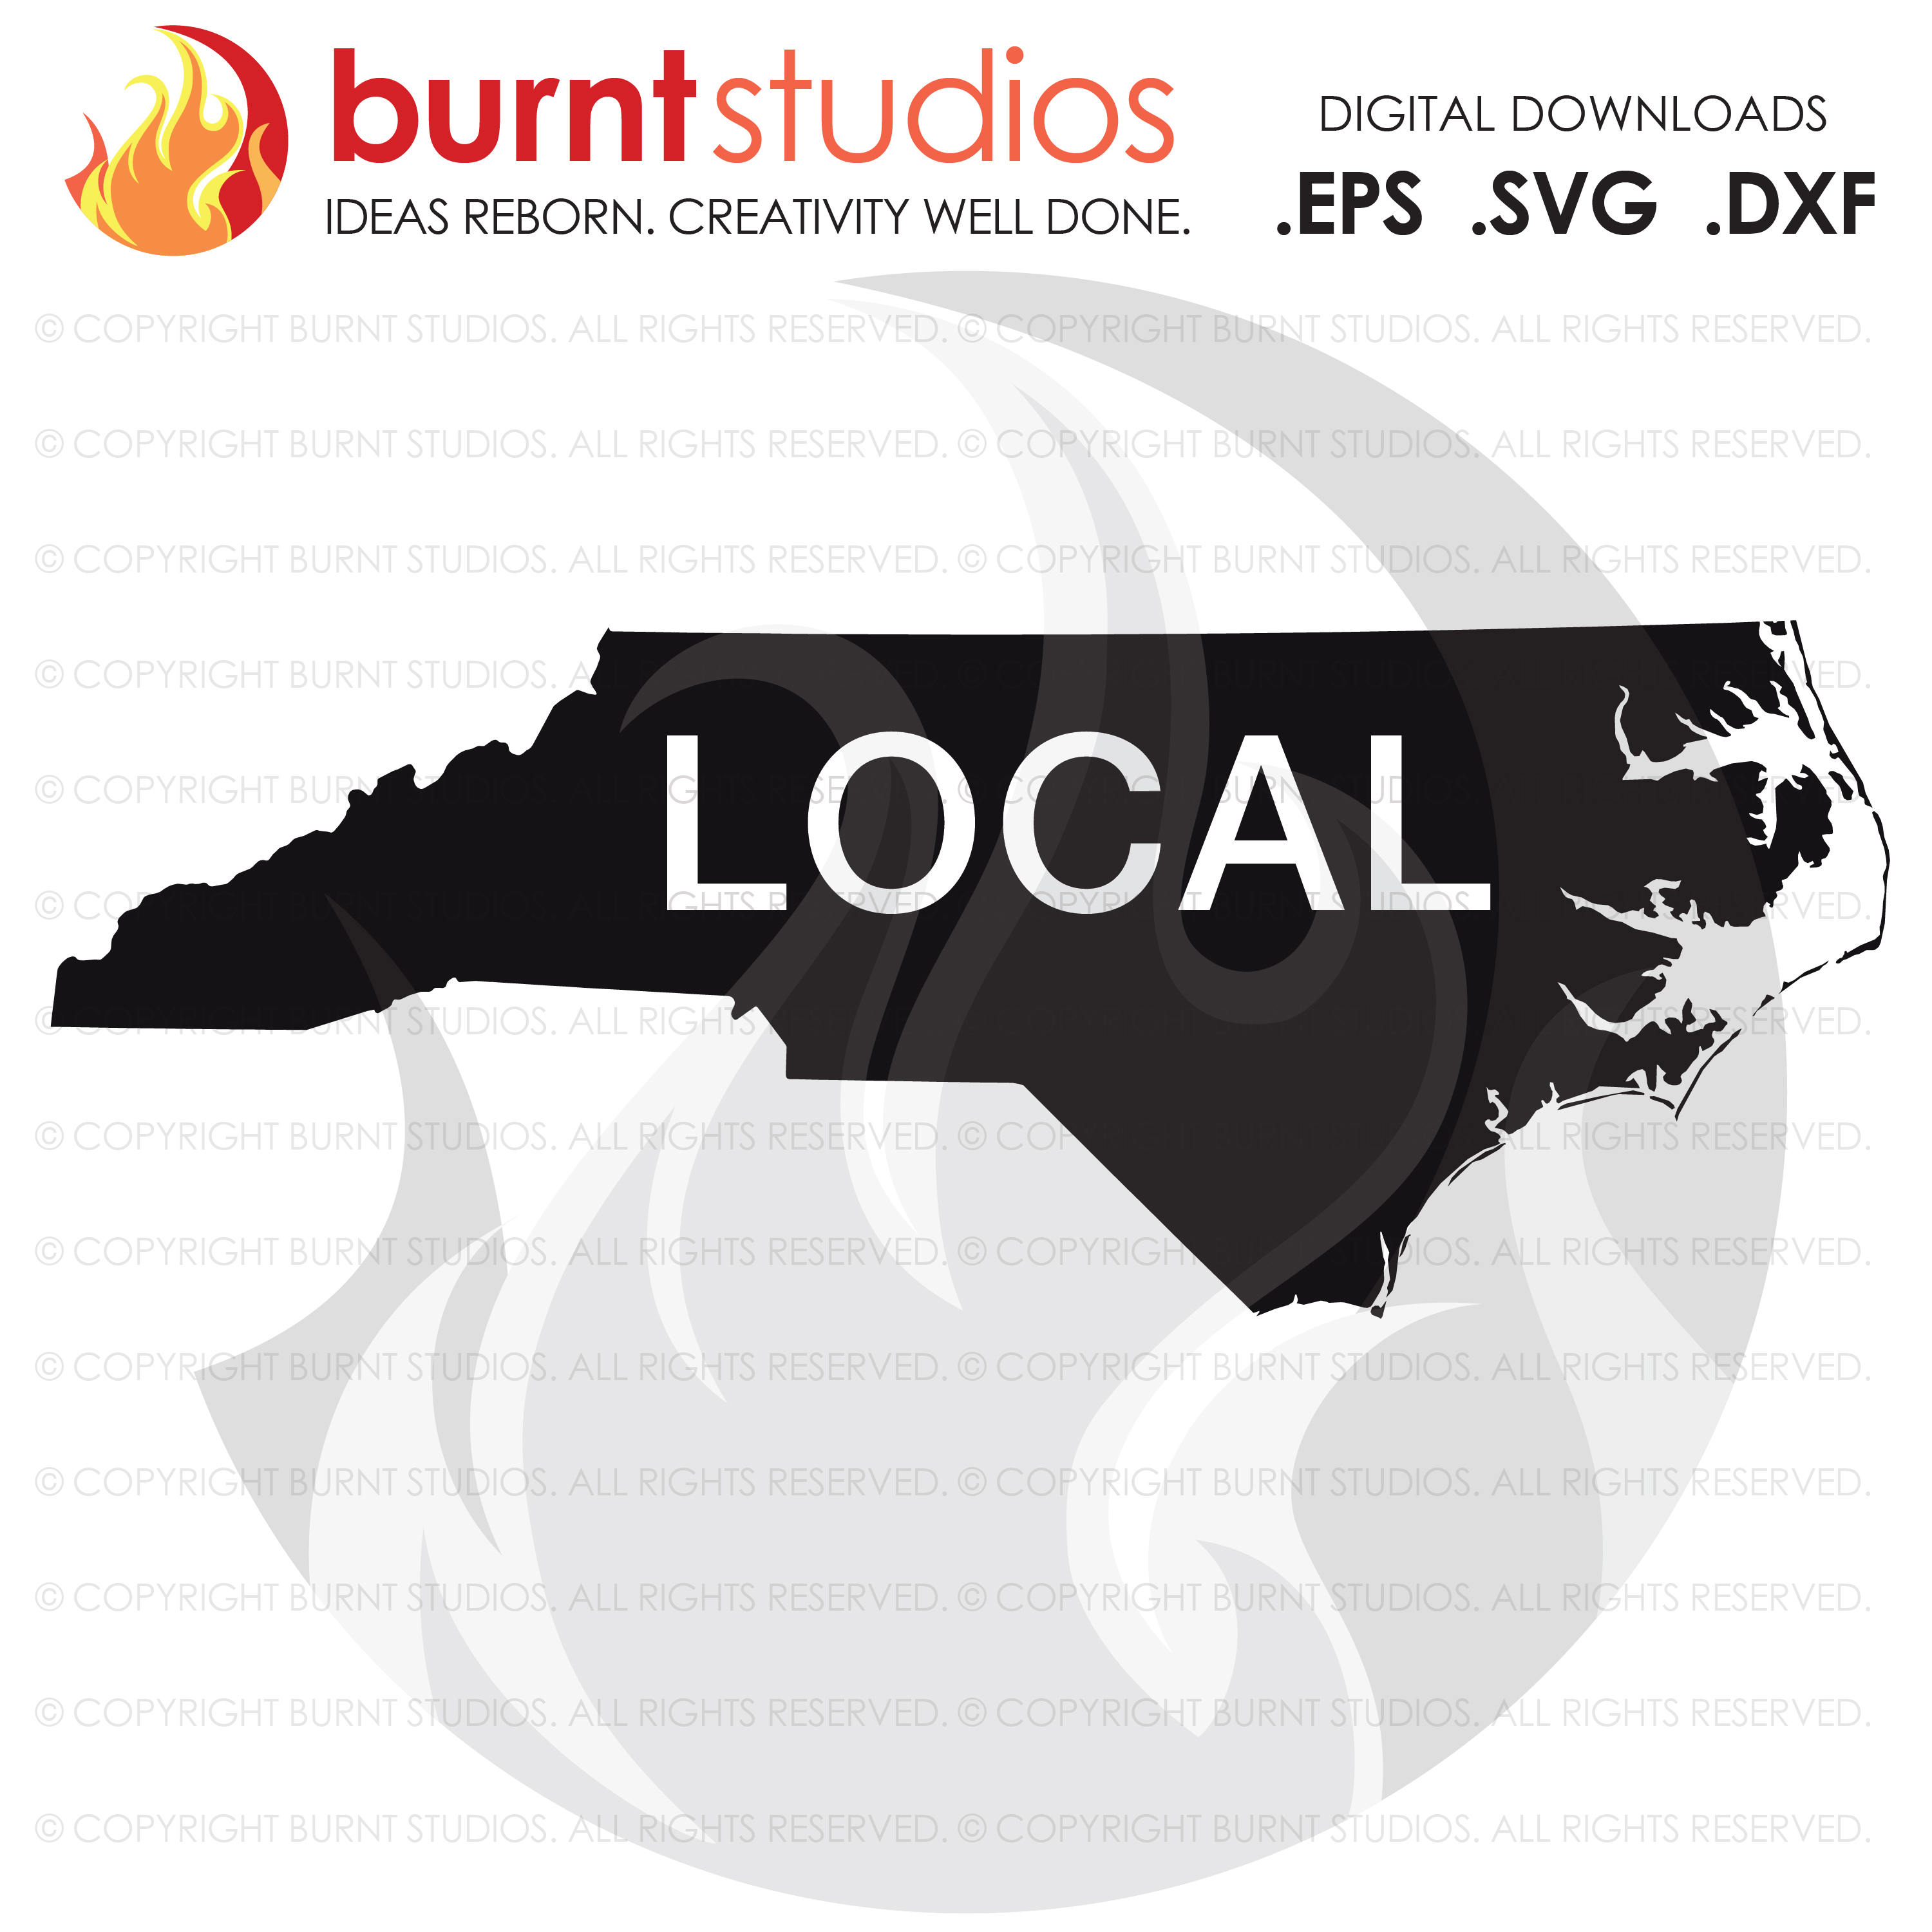 Digital SVG Cutting File,North Carolina State Outline, Local, Raleigh, Charlotte, Winston Salem, New Bern, Wilmington, Svg, Png, Dxf, Eps